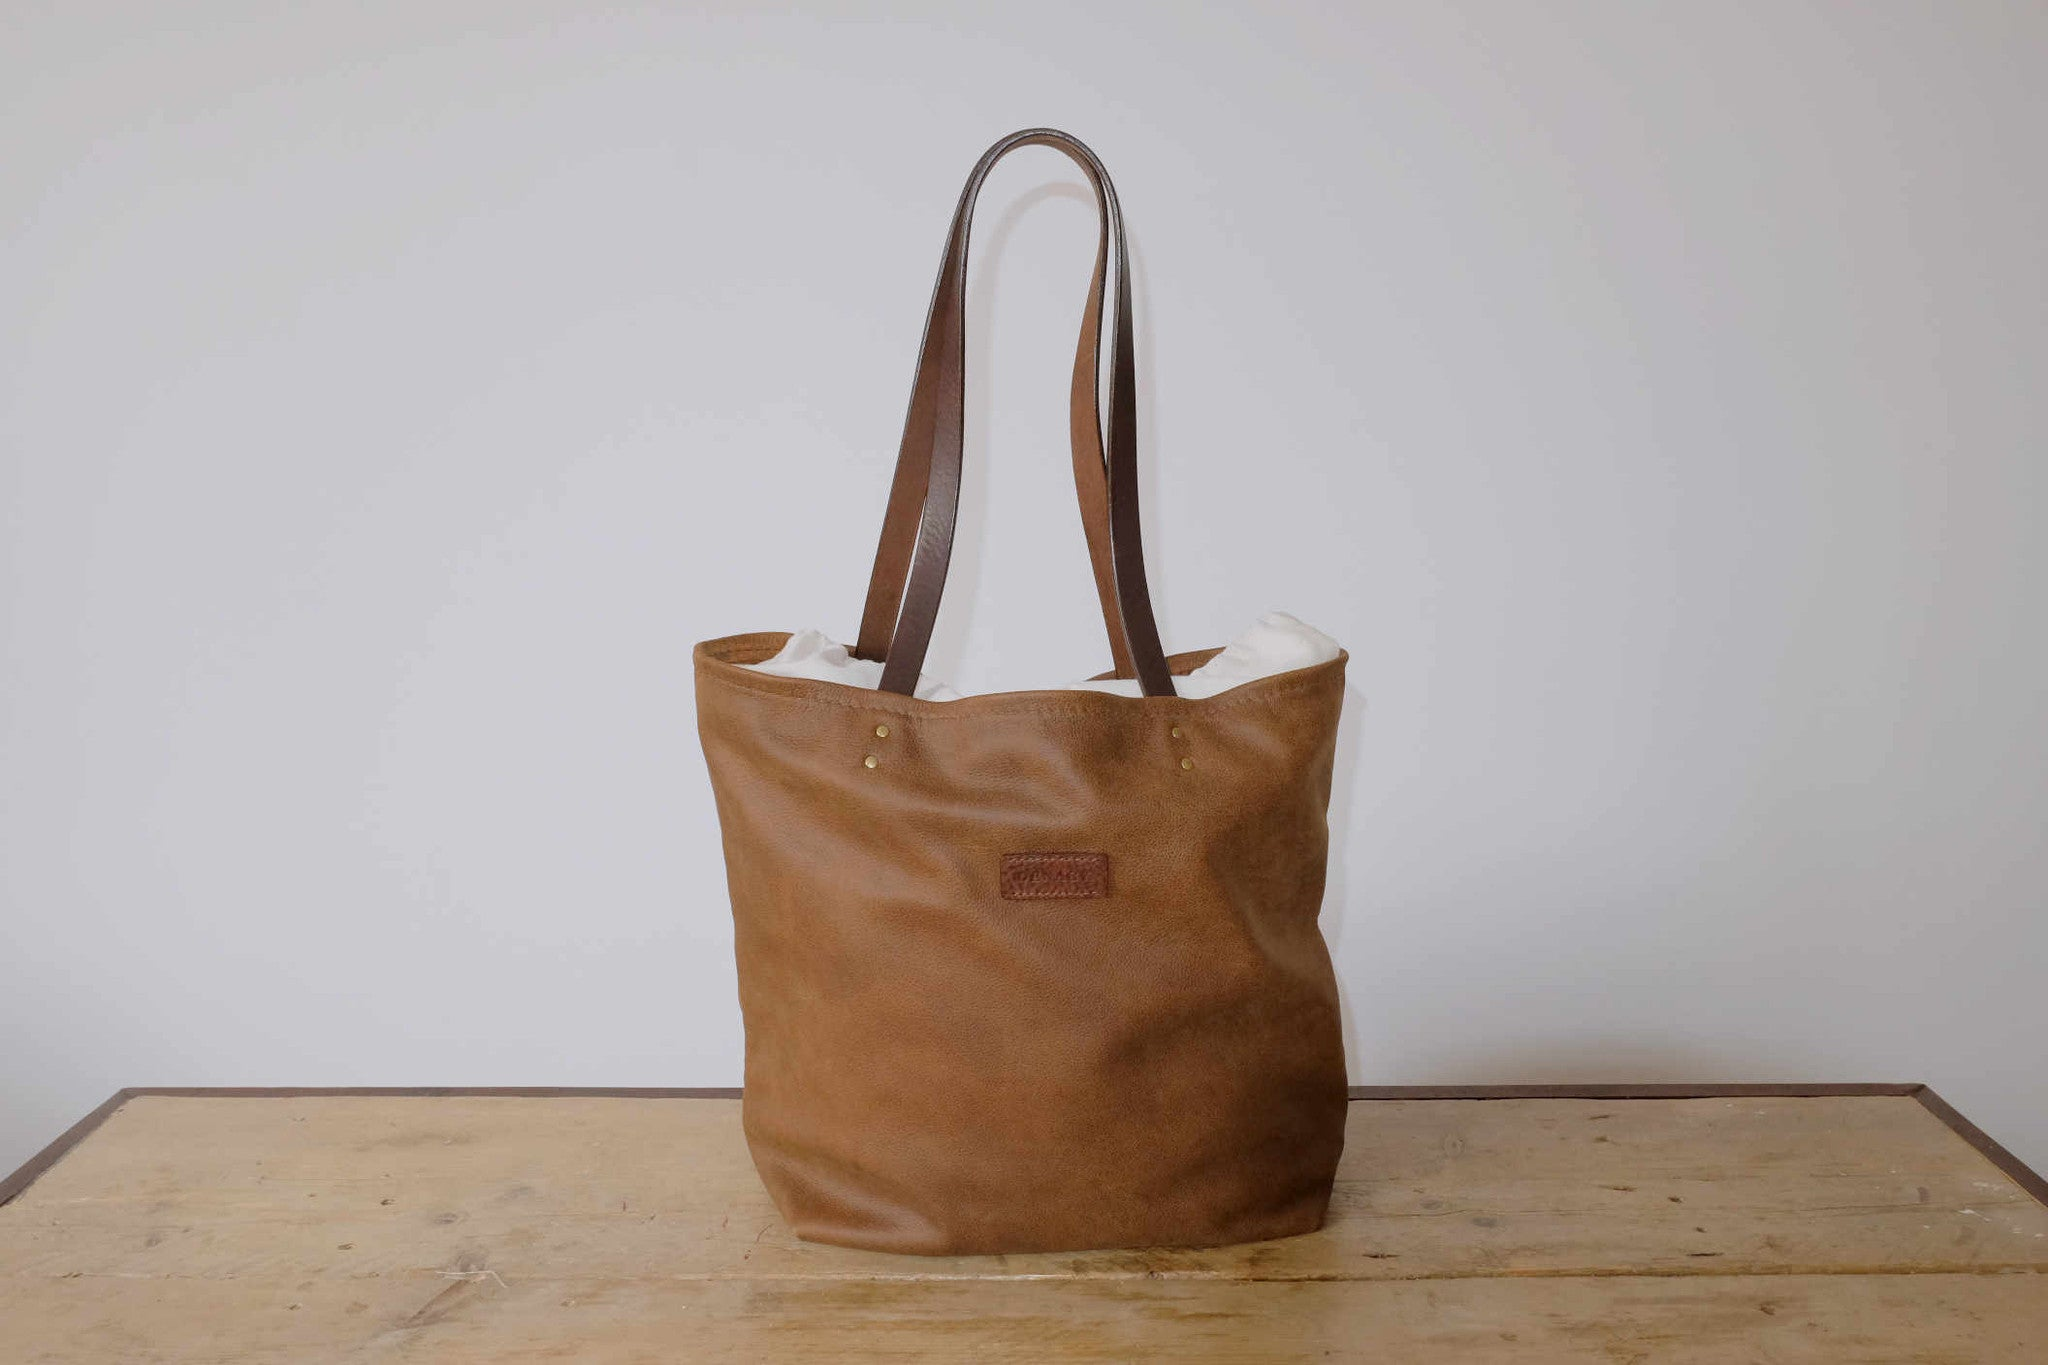 Introducing our new women's Tote Bag